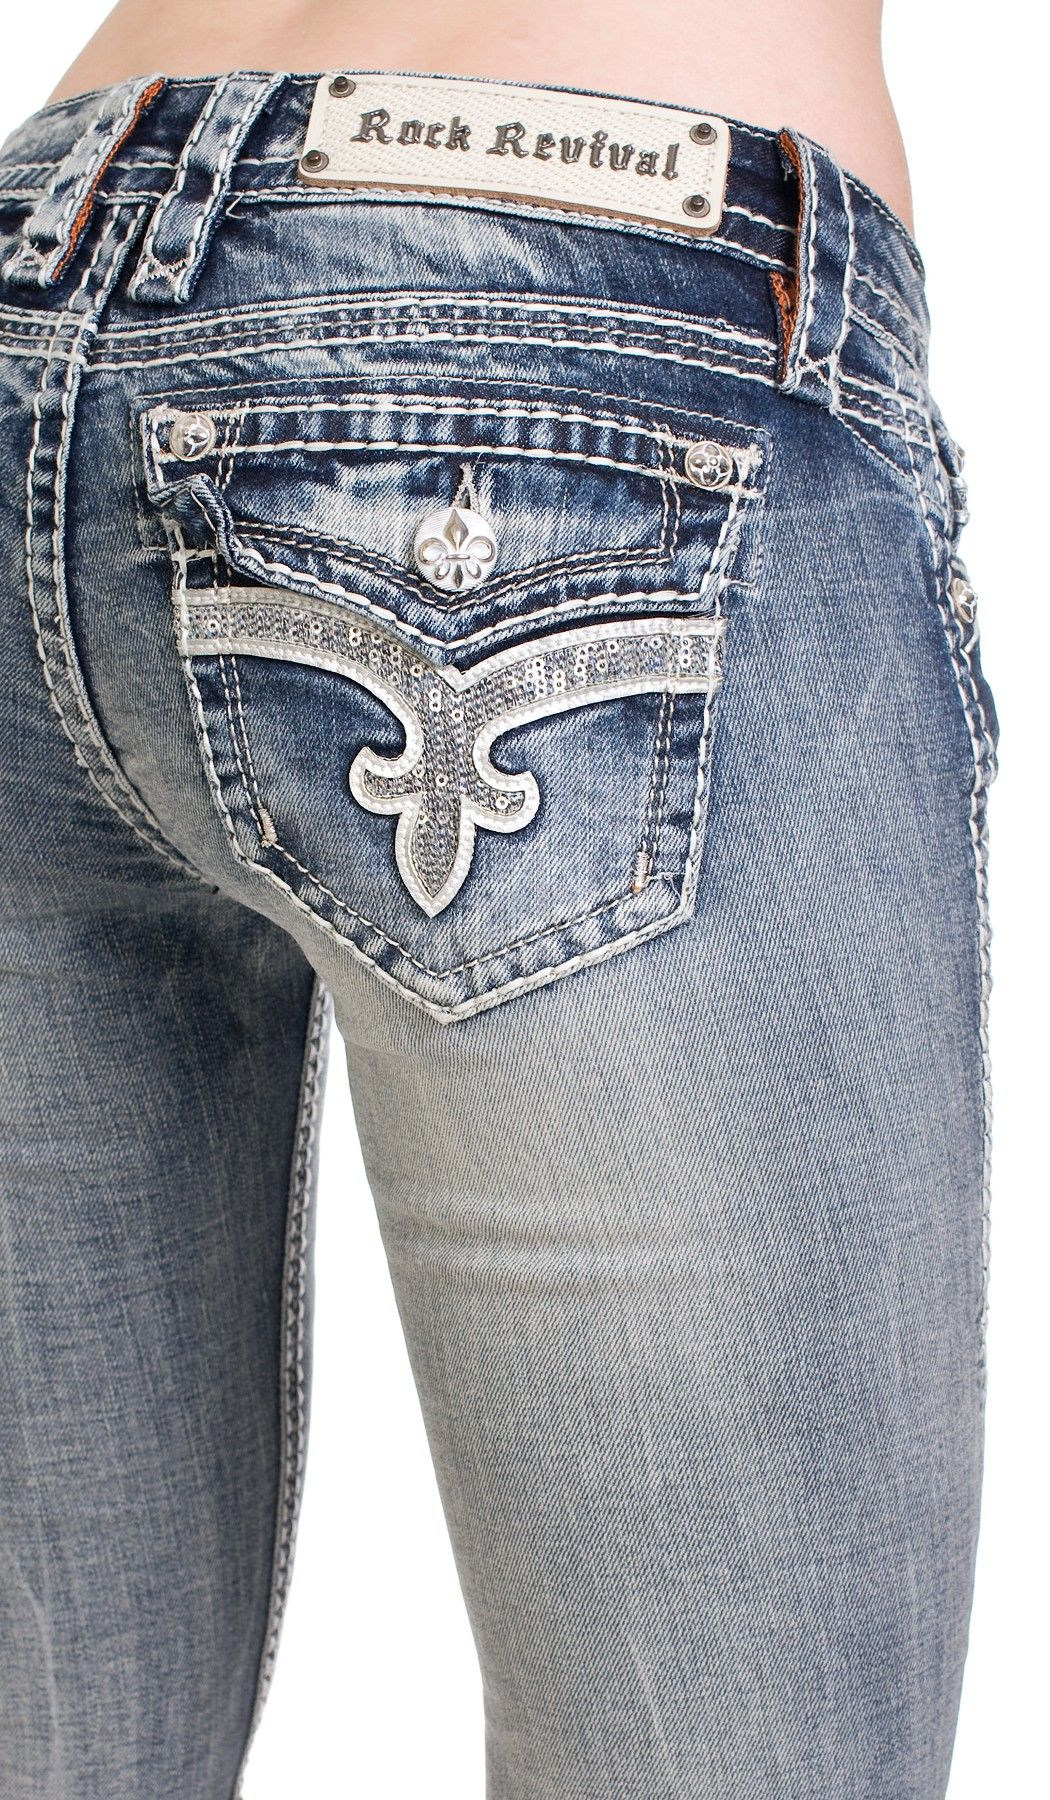 Miss Me bootcut jeans size 25,26,27,28,29,30,31,32,33,34